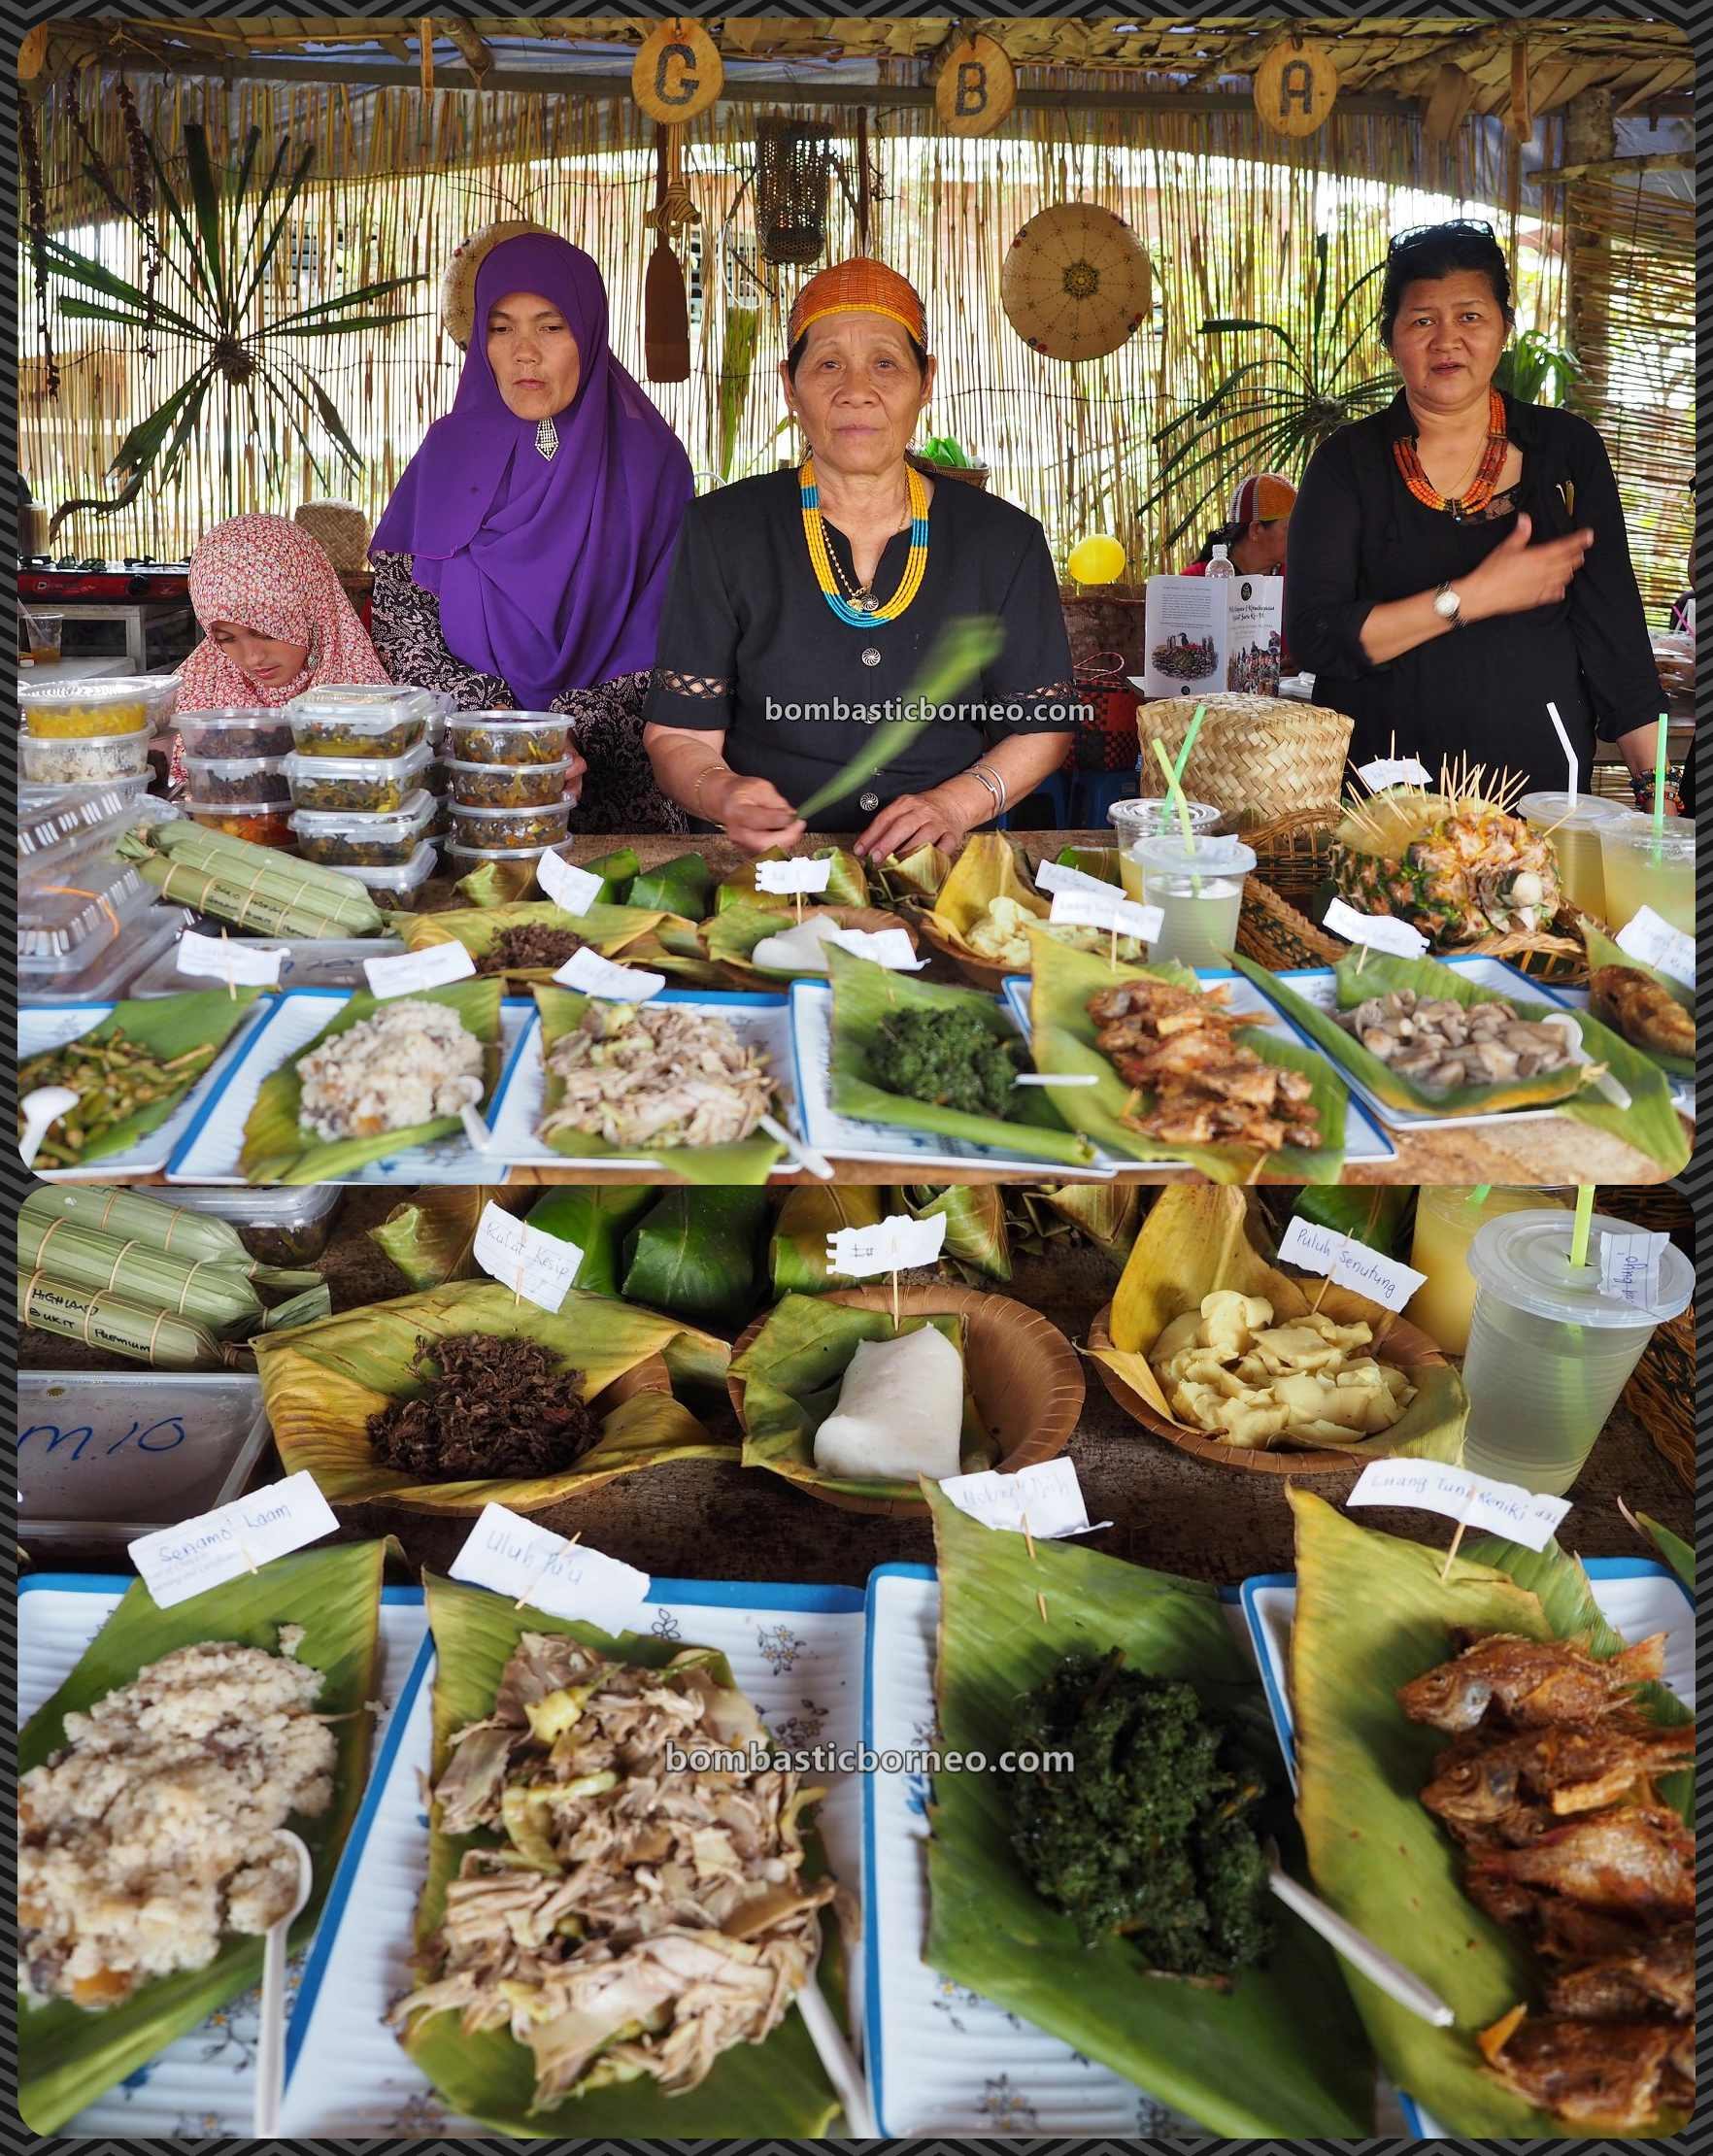 Pesta Nukenen, Bario Food Cultural Festival, crafts, exotic culinary, indigenous, traditional, destination, Interior village, dayak, native, tribe, Kelabit people, Sarawak, Tourism, travel guide,